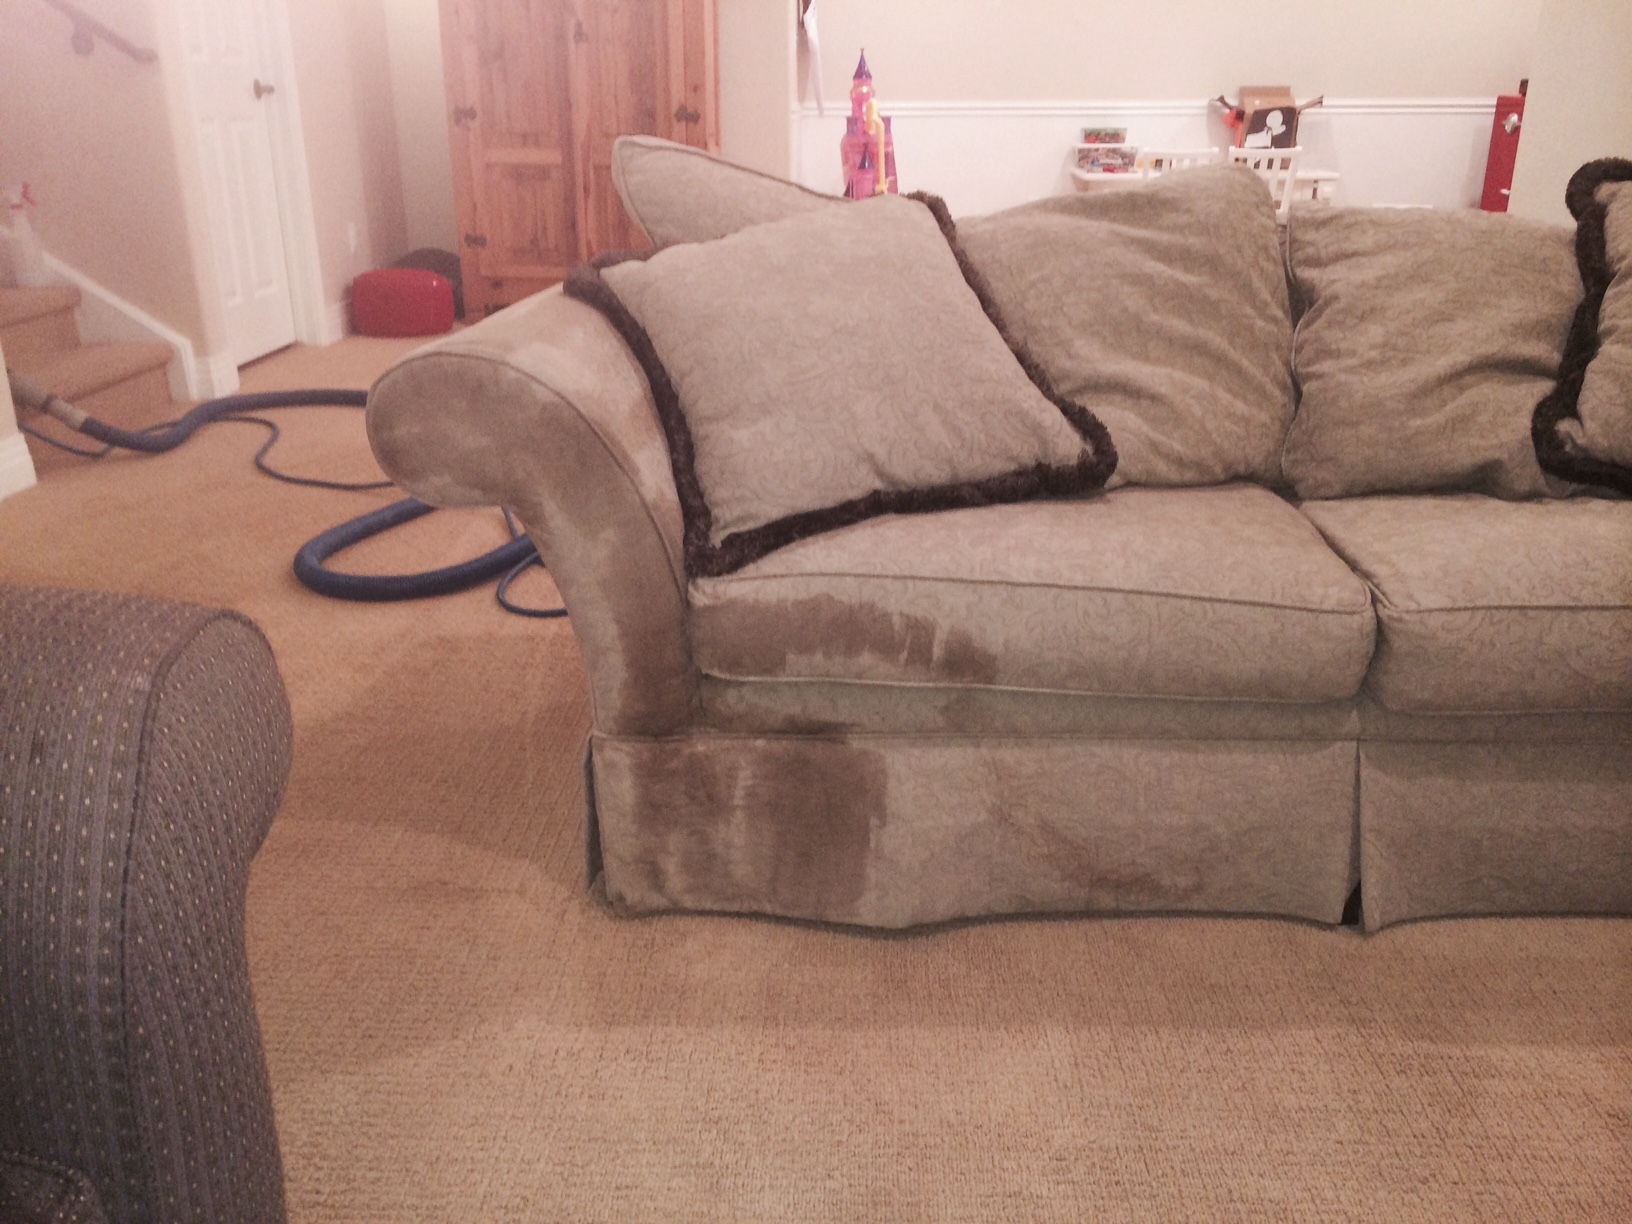 denver sofa cleaning luxury upholstery services in colorado 5280 after